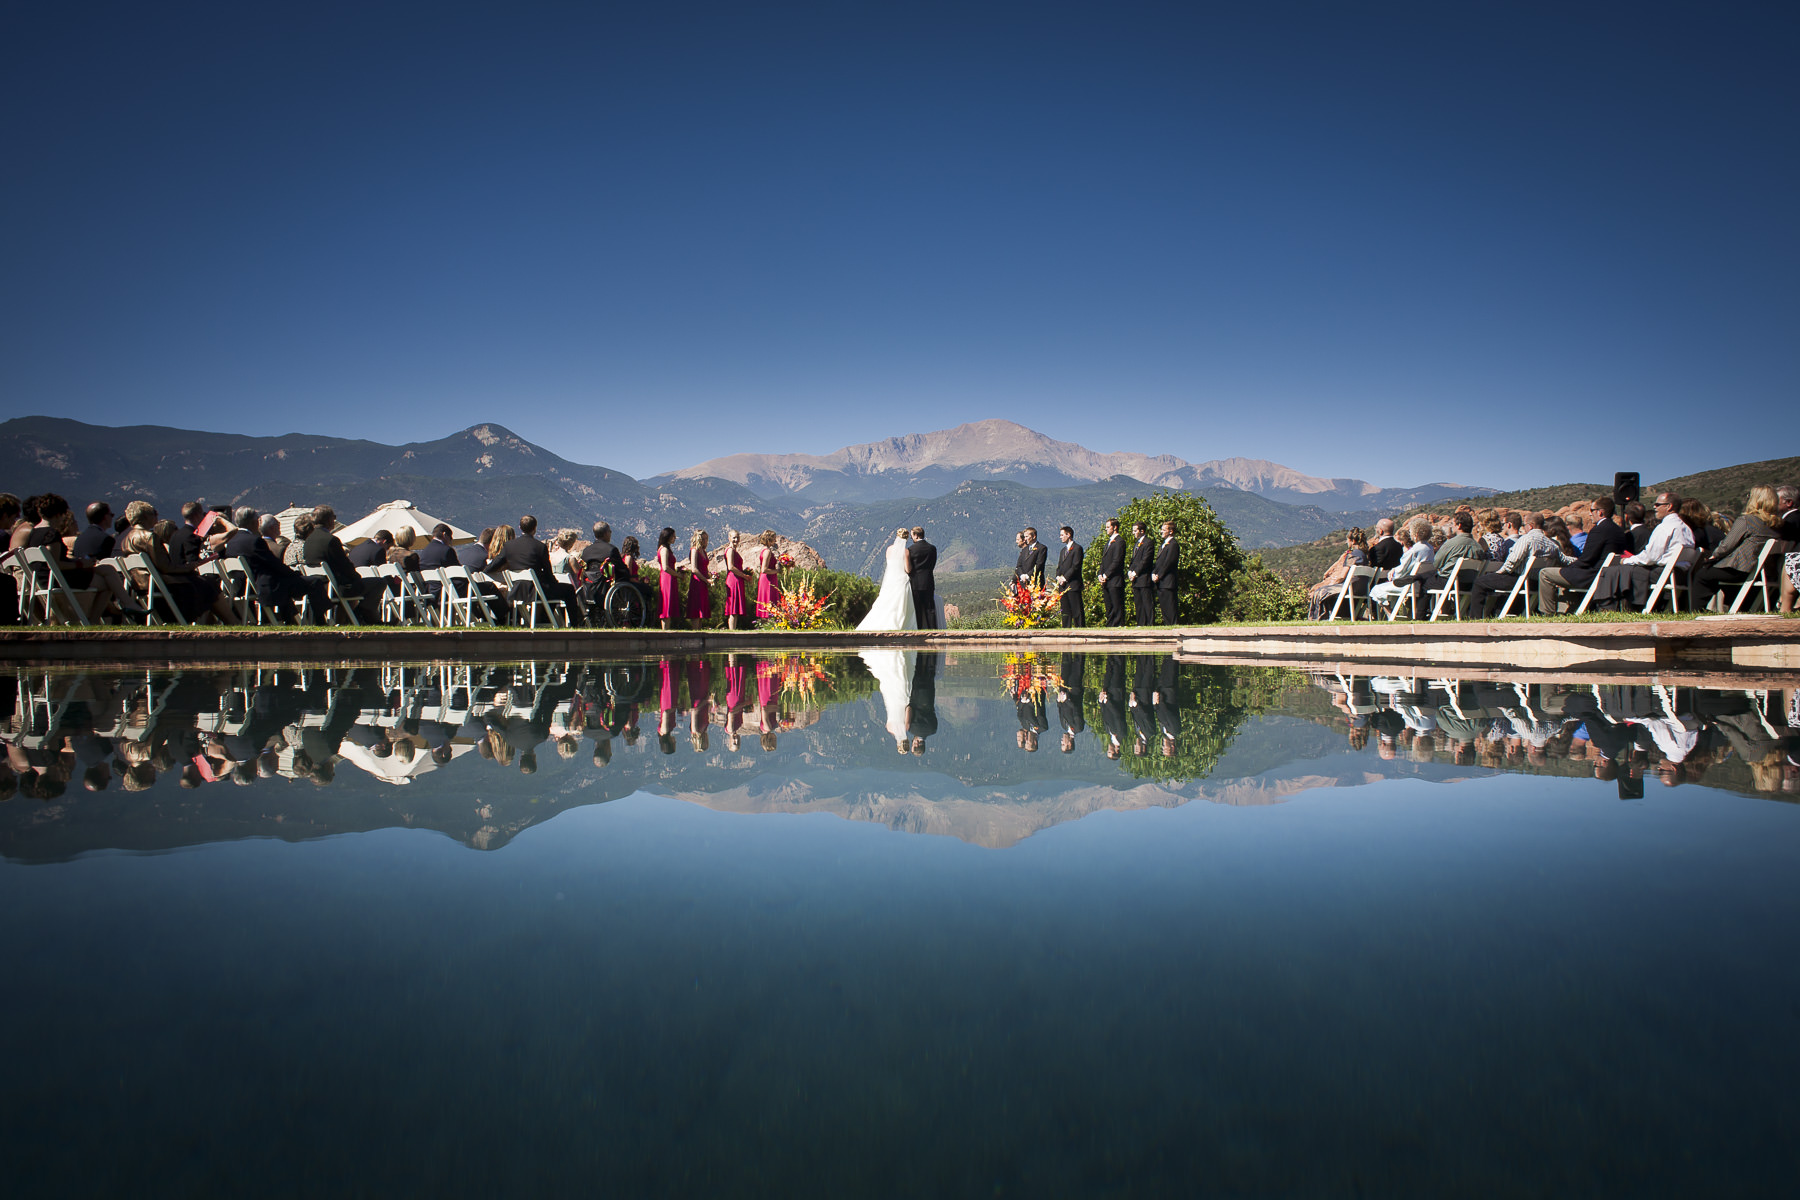 Wedding ceremony with reflection pool, Garden of the Gods park and Pikes Peak.